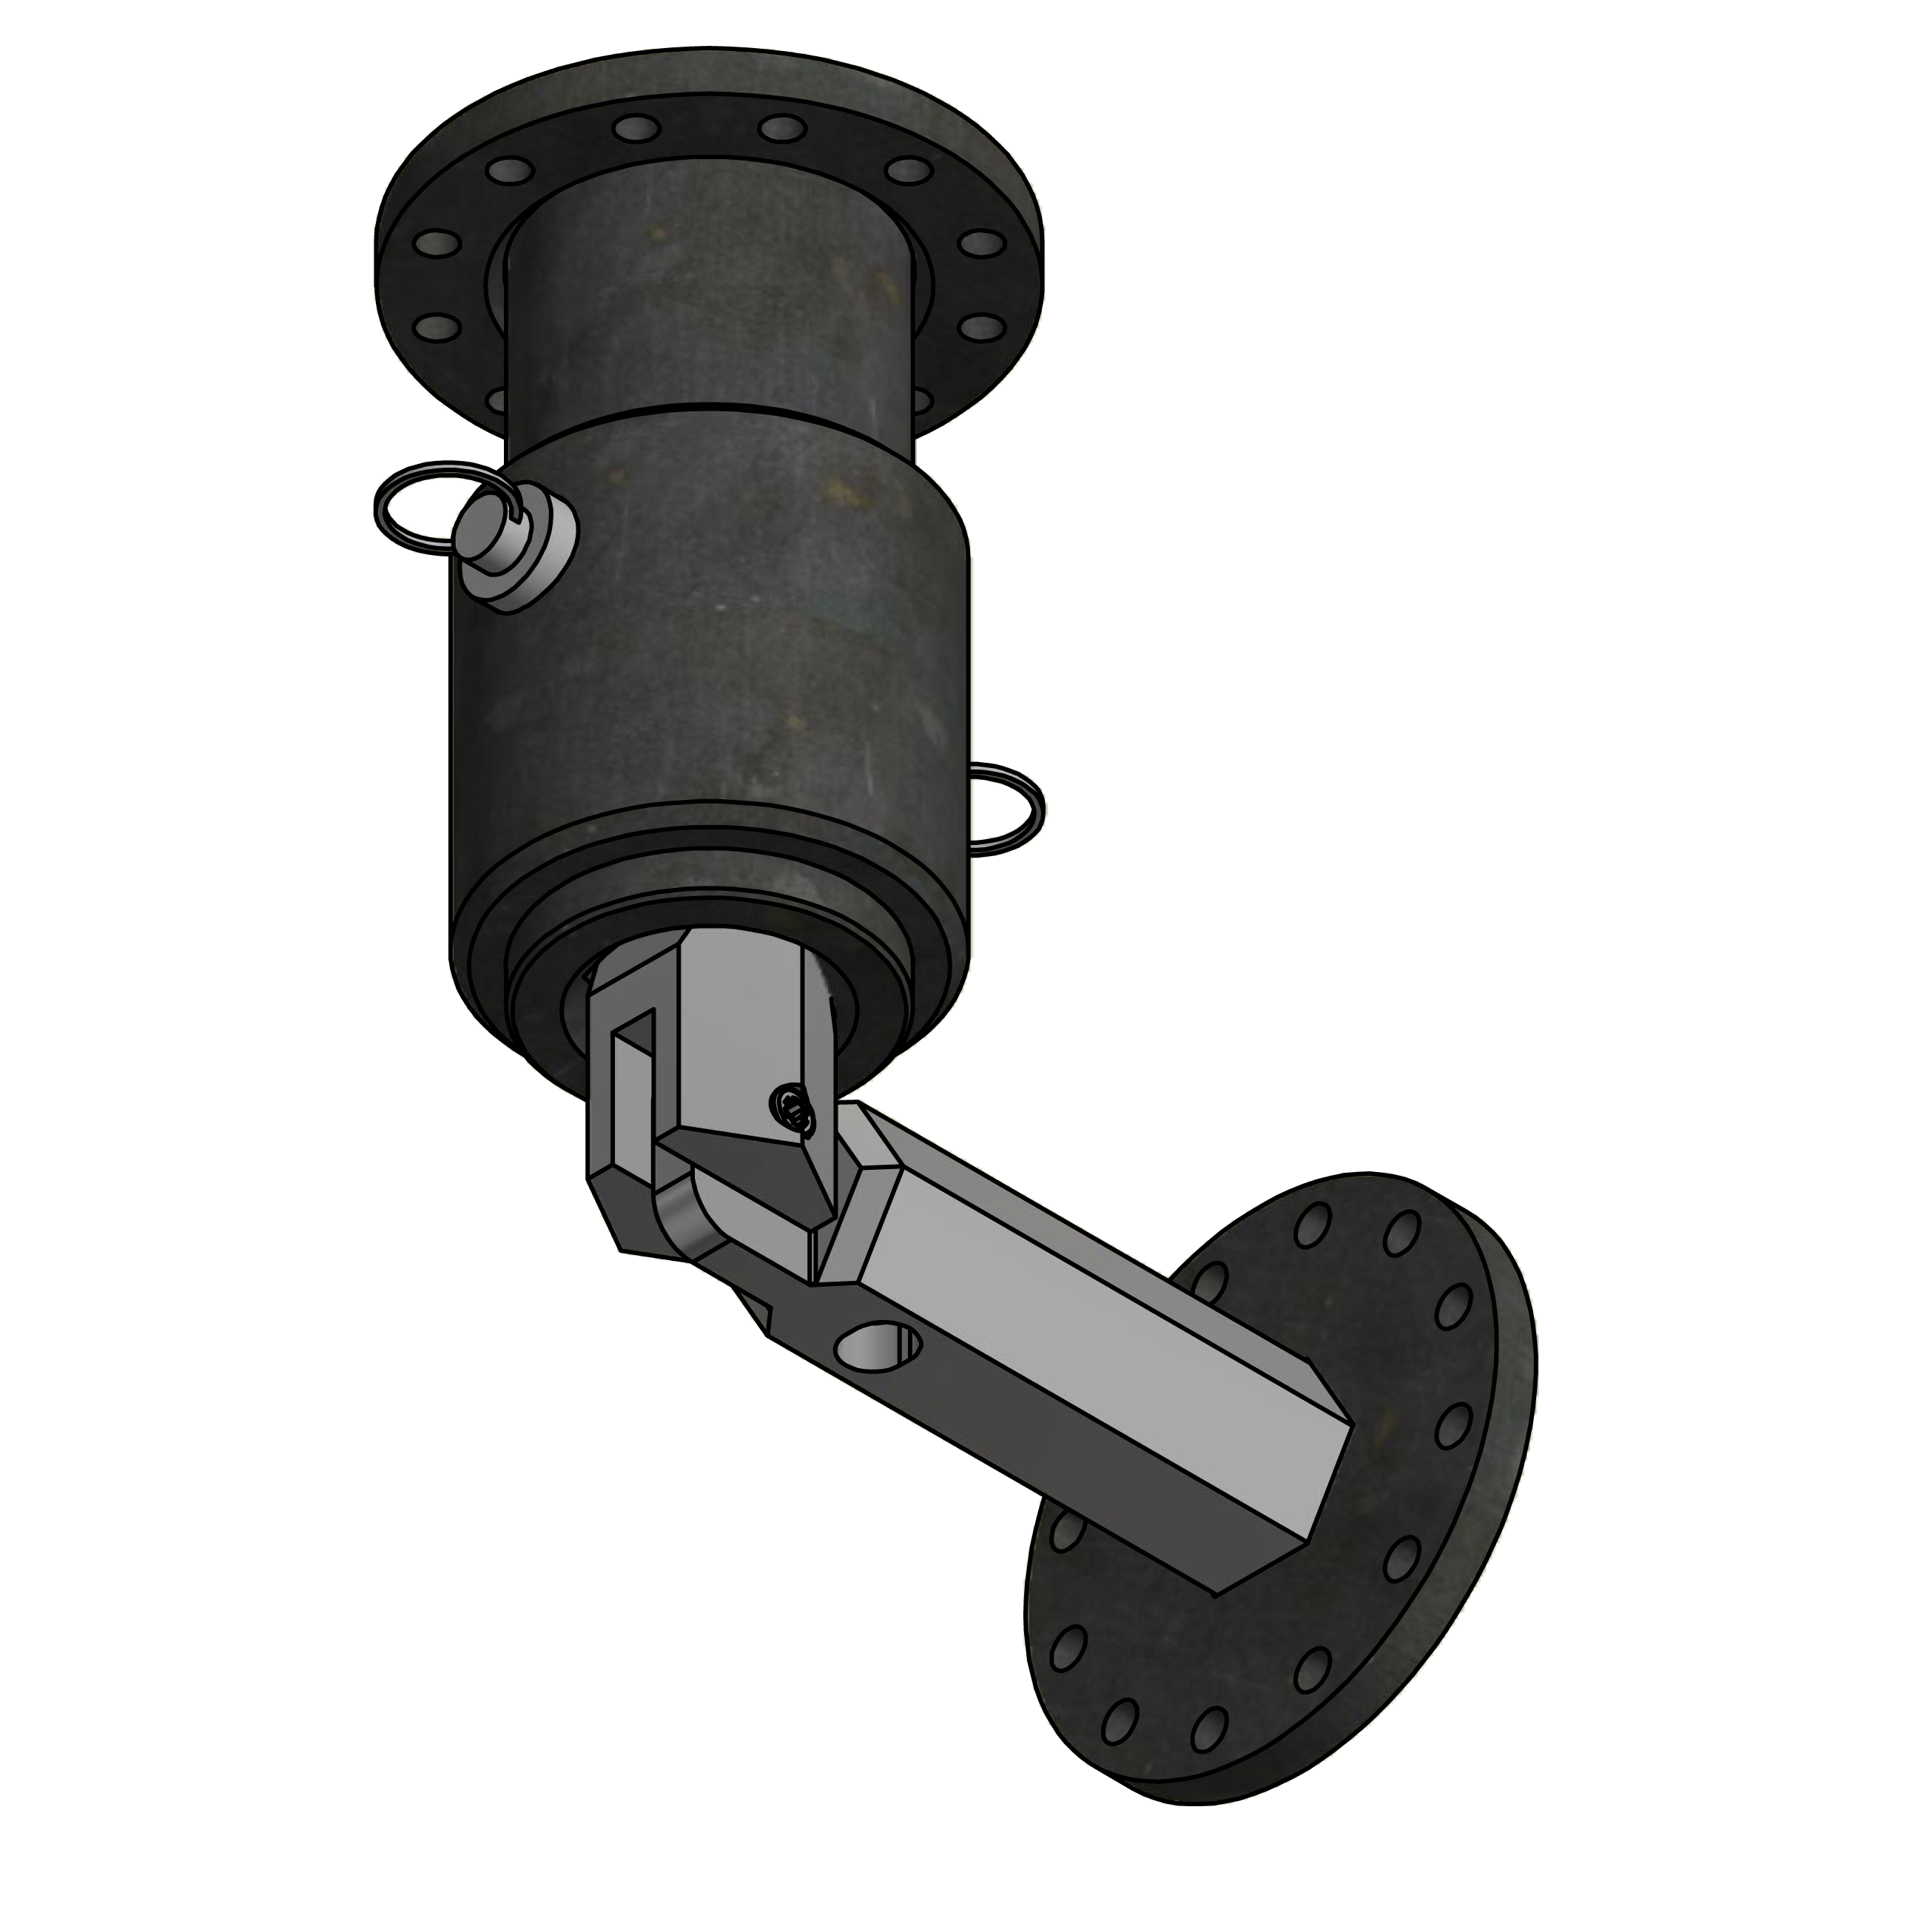 EZI Pile | Skid Steer Universal Pivoting Adapter for Helical